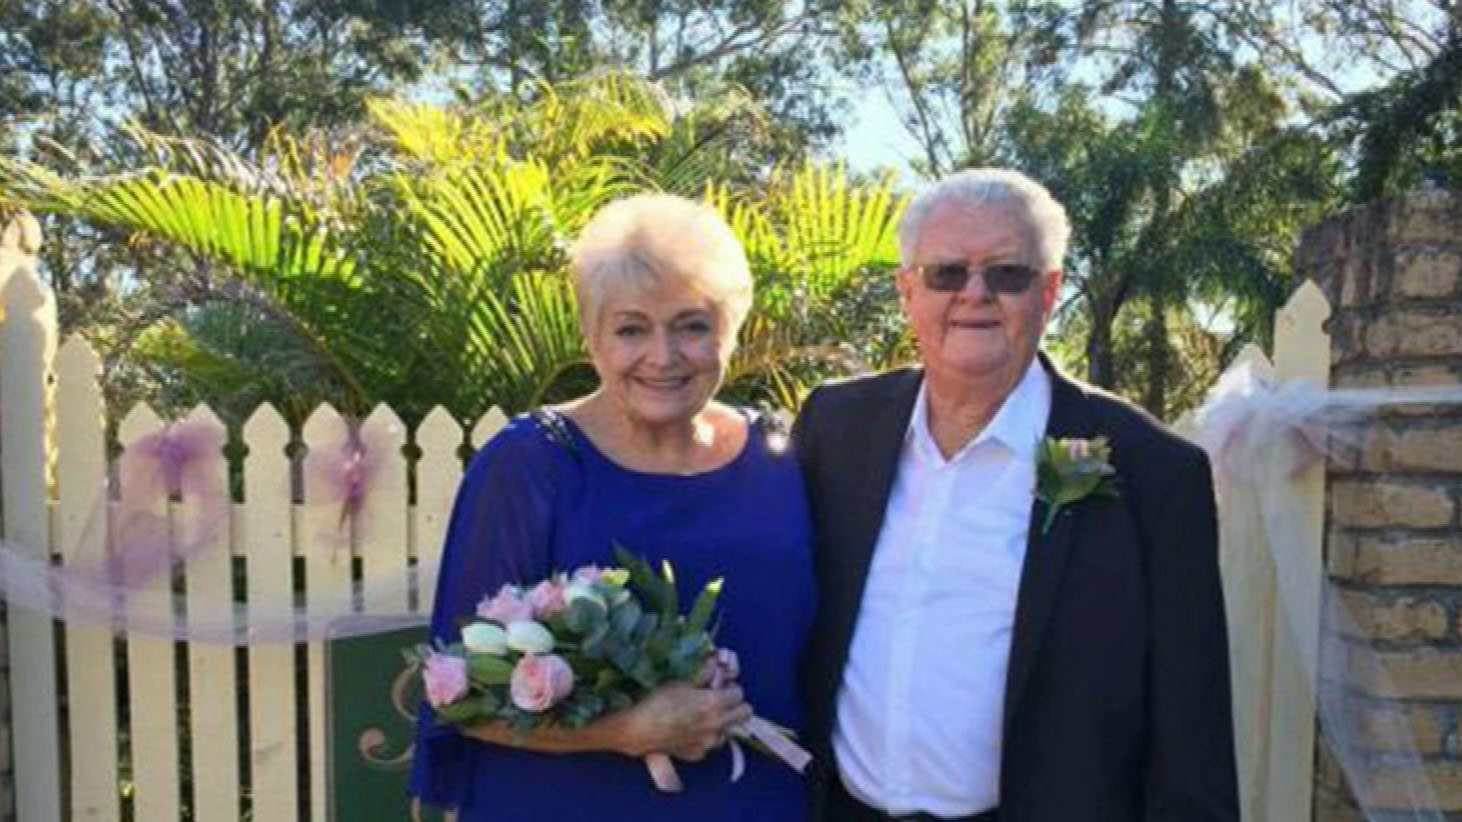 Pam and Ron Sinclair first met in their early 20s when they were neighbours in Strathpine. (Supplied)